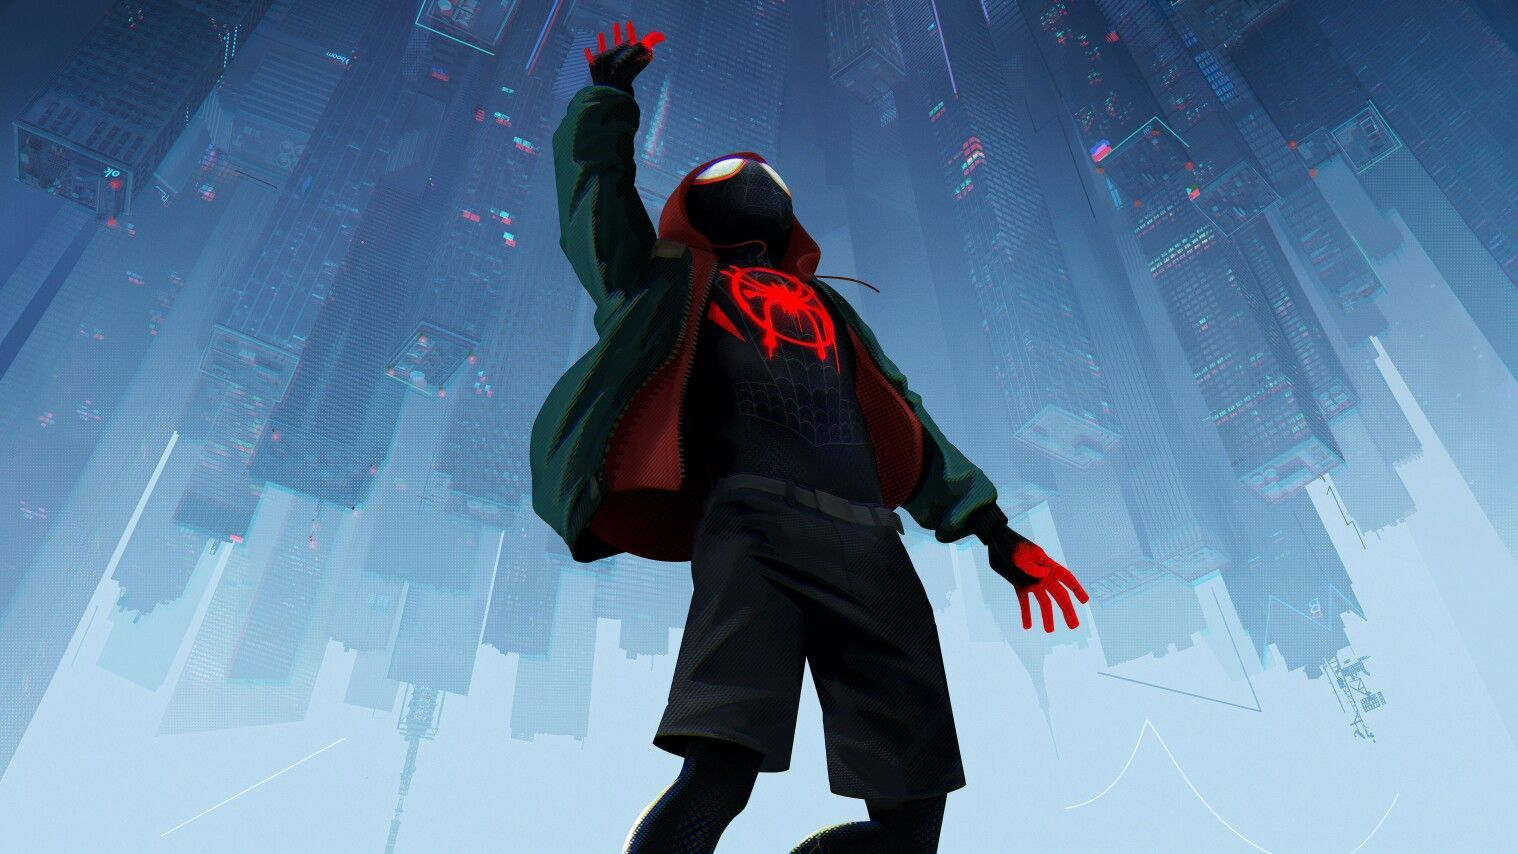 Into The Spider Verse Wallpapers Top Free Into The Spider Verse Backgrounds Wallpaperaccess